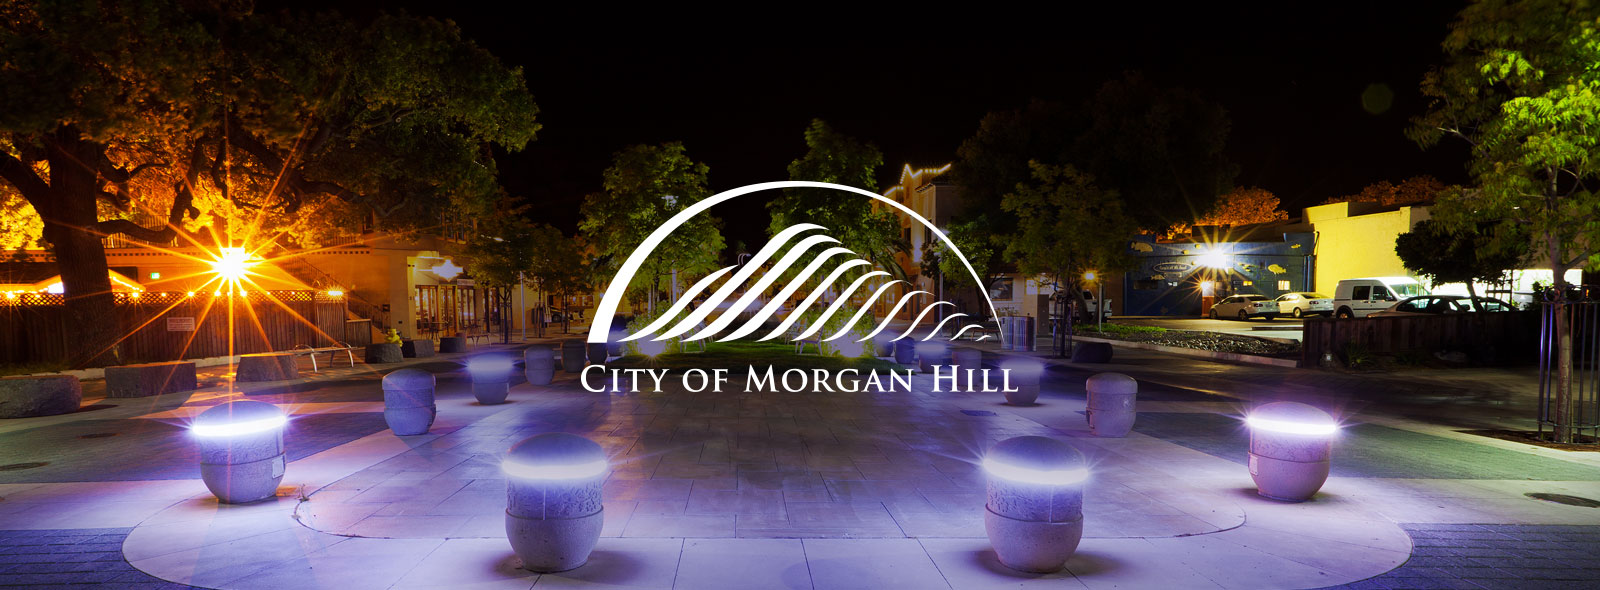 City of Morgan Hill Logo